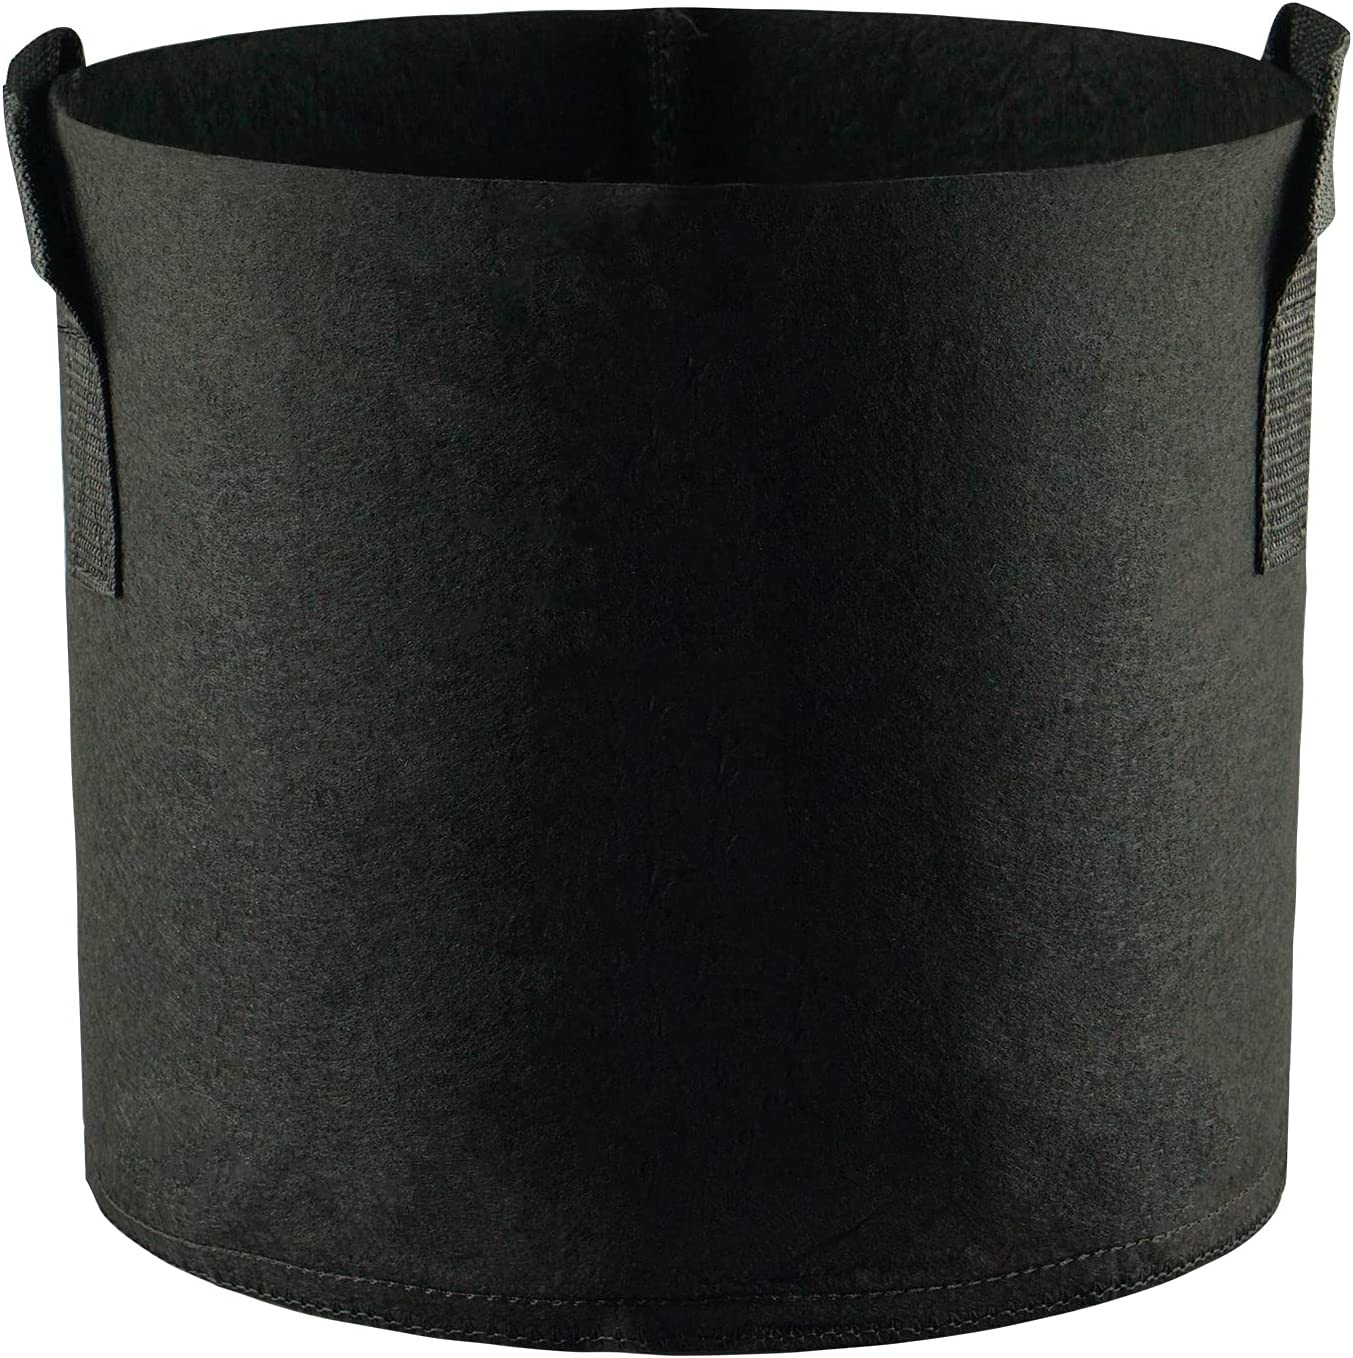 JH3 Grow Bags 3 Gallon Grow Pots 5 Pack with Handles with Black Heavy Duty Thickened Nonwoven Fabric Plant Pots Suitable for Planting in patios Gardens can be Used to Plant Vegetables Fruits Flower